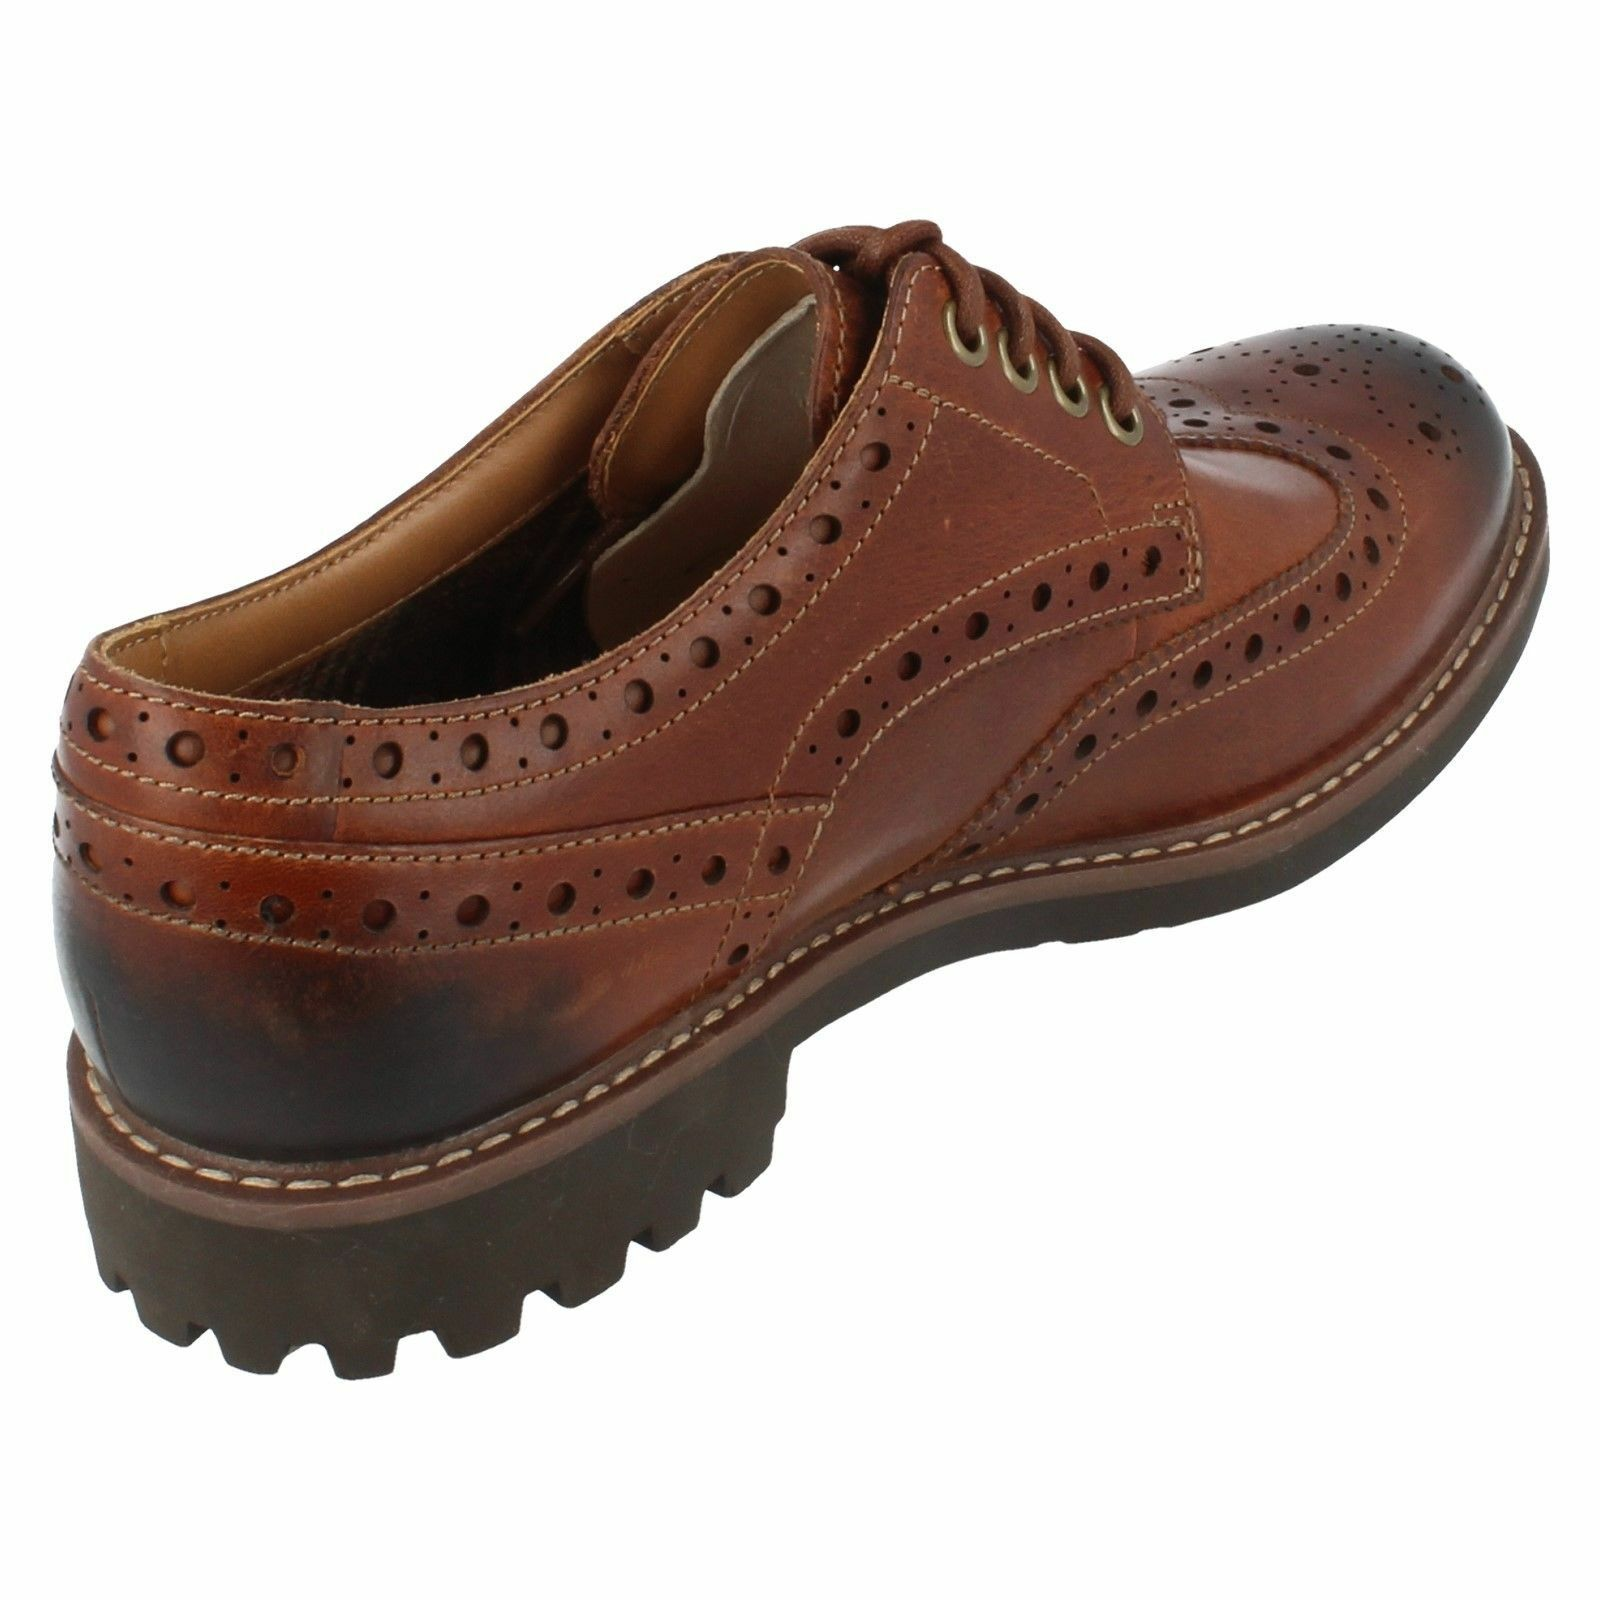 Uomo Schuhes MontacuteWing4 Brogue Lace Up Schuhes Uomo By Clarks 32c25d